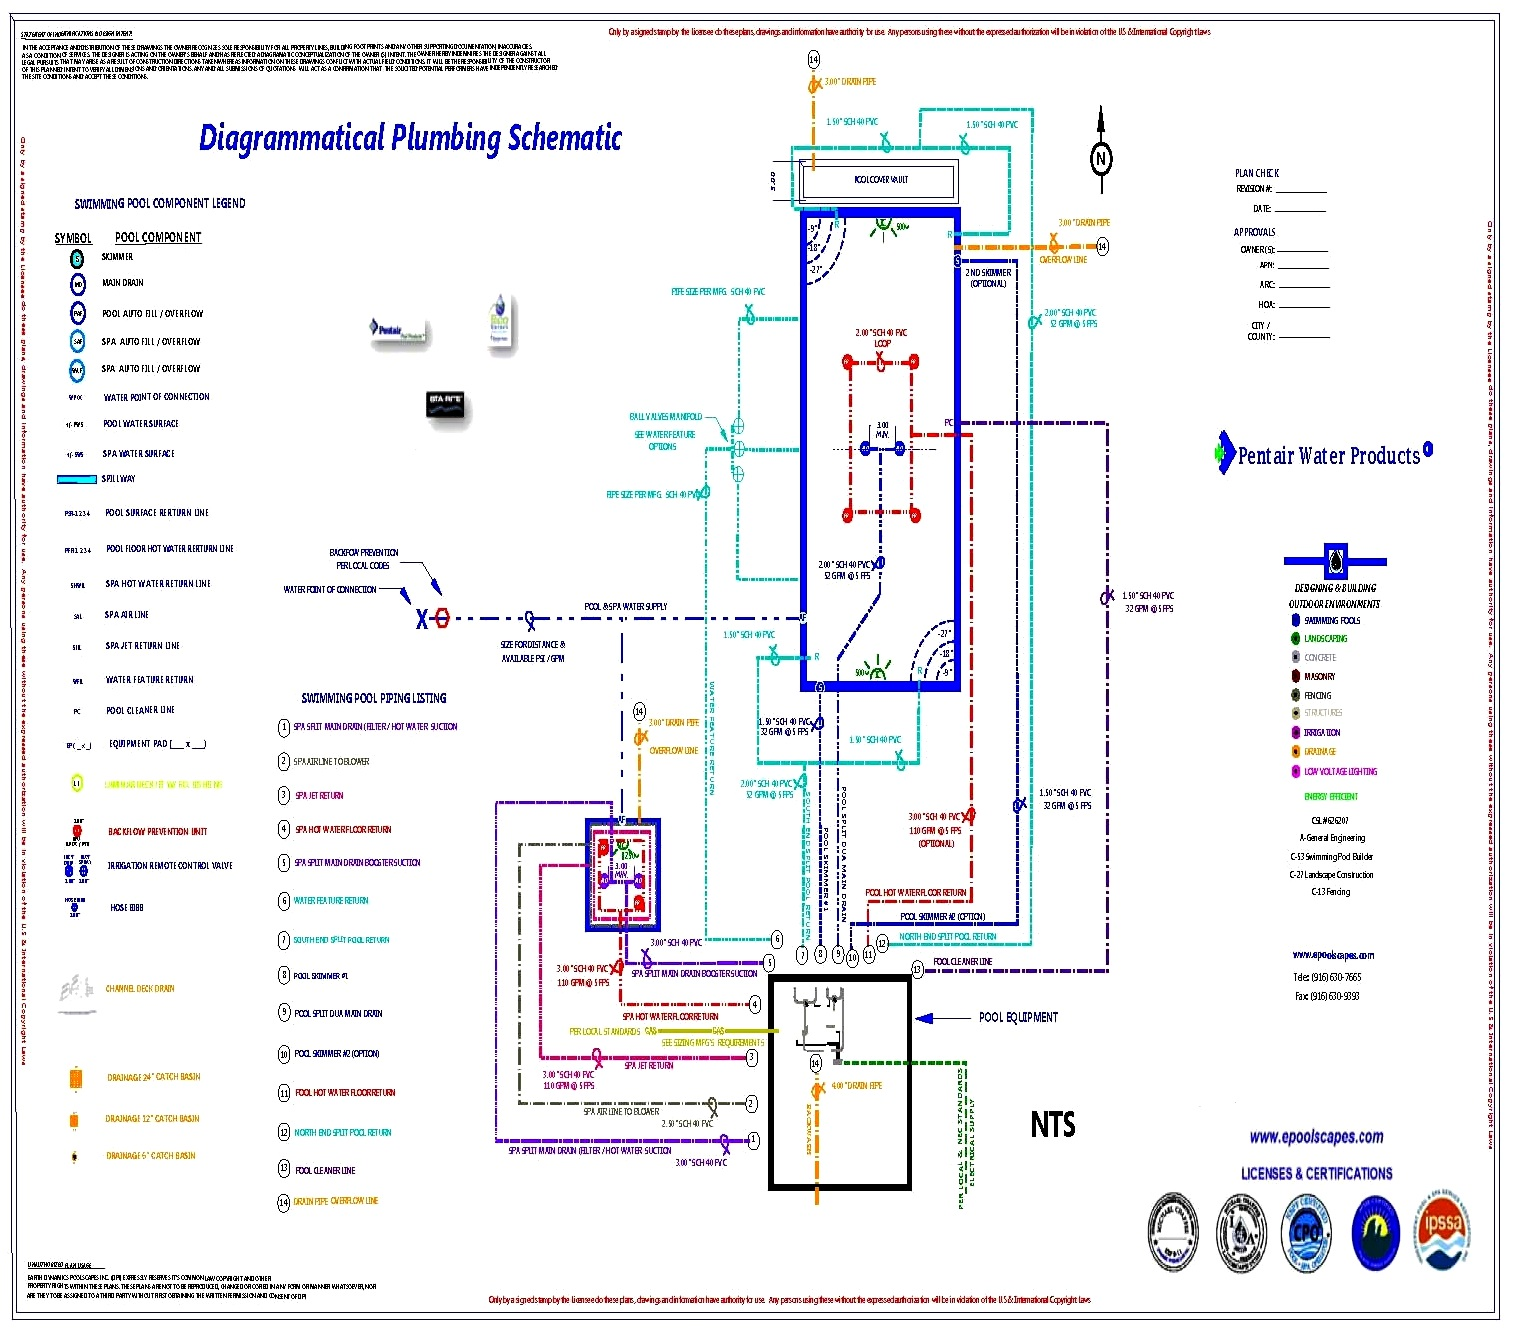 Spa Wiring Diagram Typical Diagrams Swimming Pool S Plumbing Schematic 2010 Rh Epoolscapes Com Electrical Light